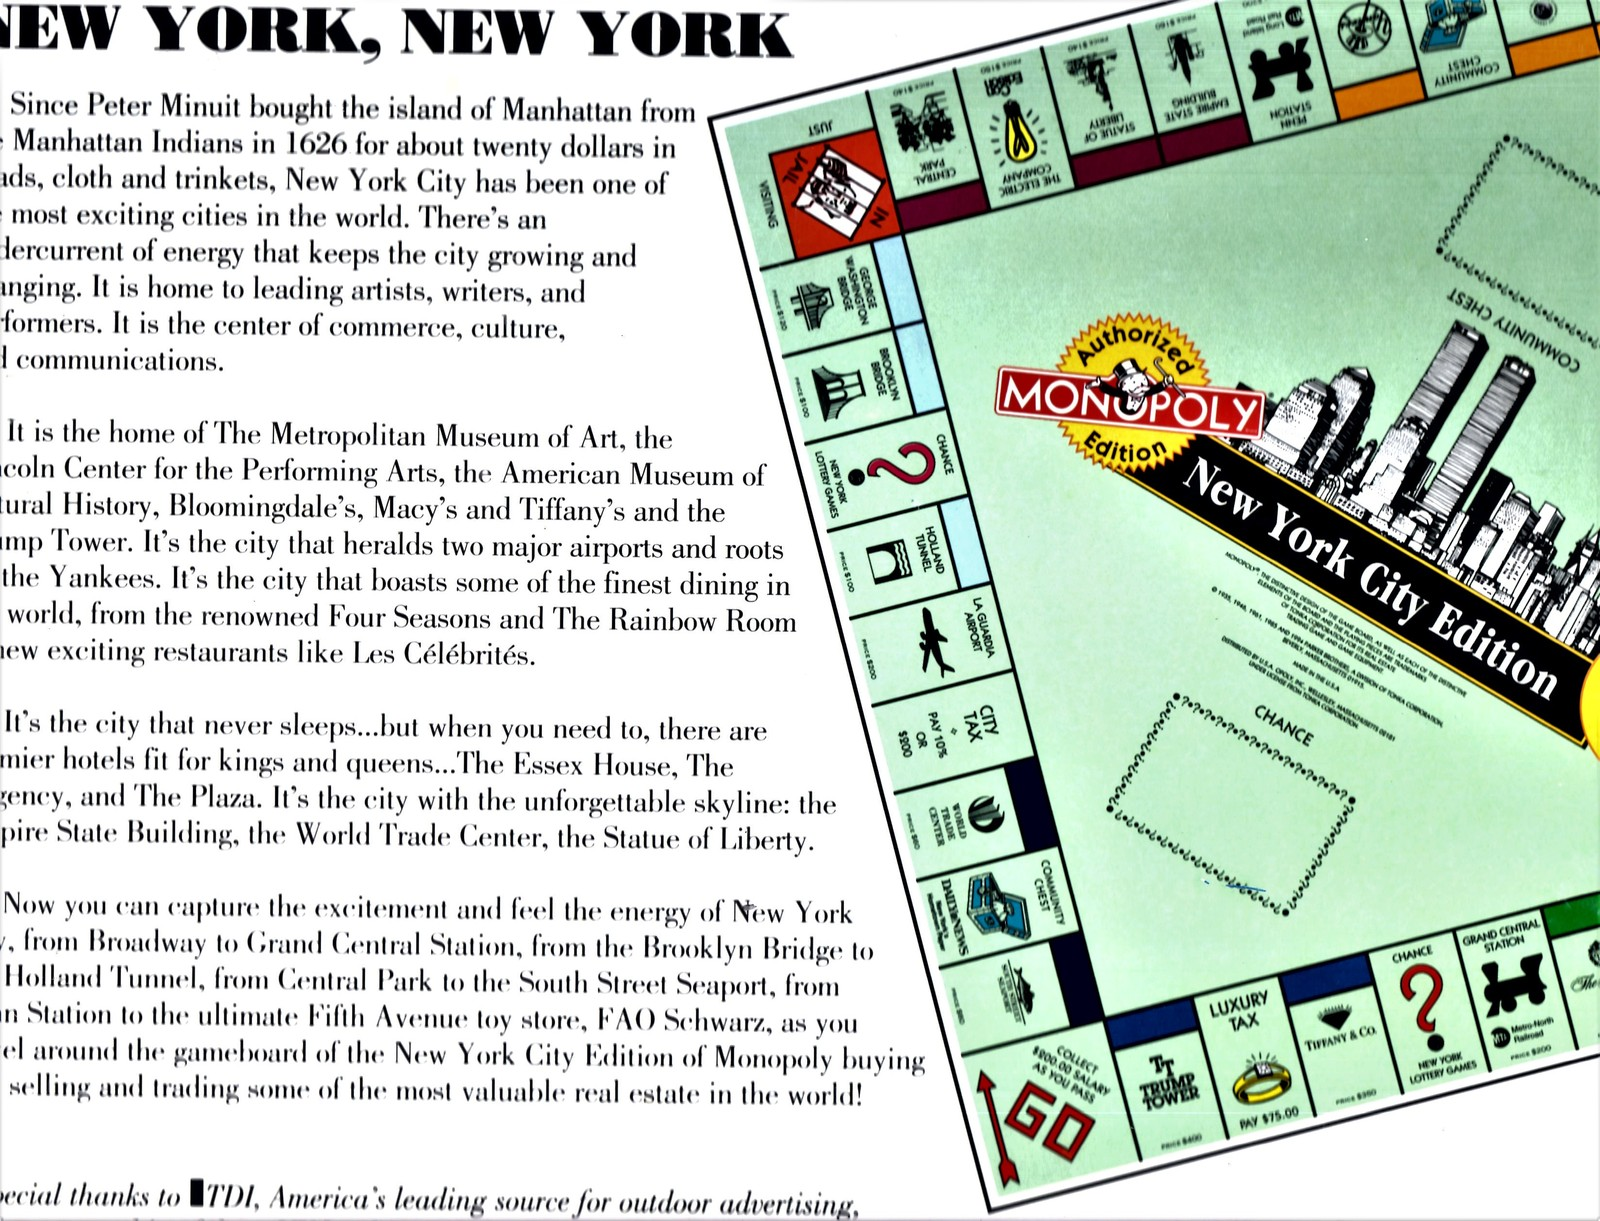 Monopoly - New York City Edition Monopoly - 1995 (Complete)